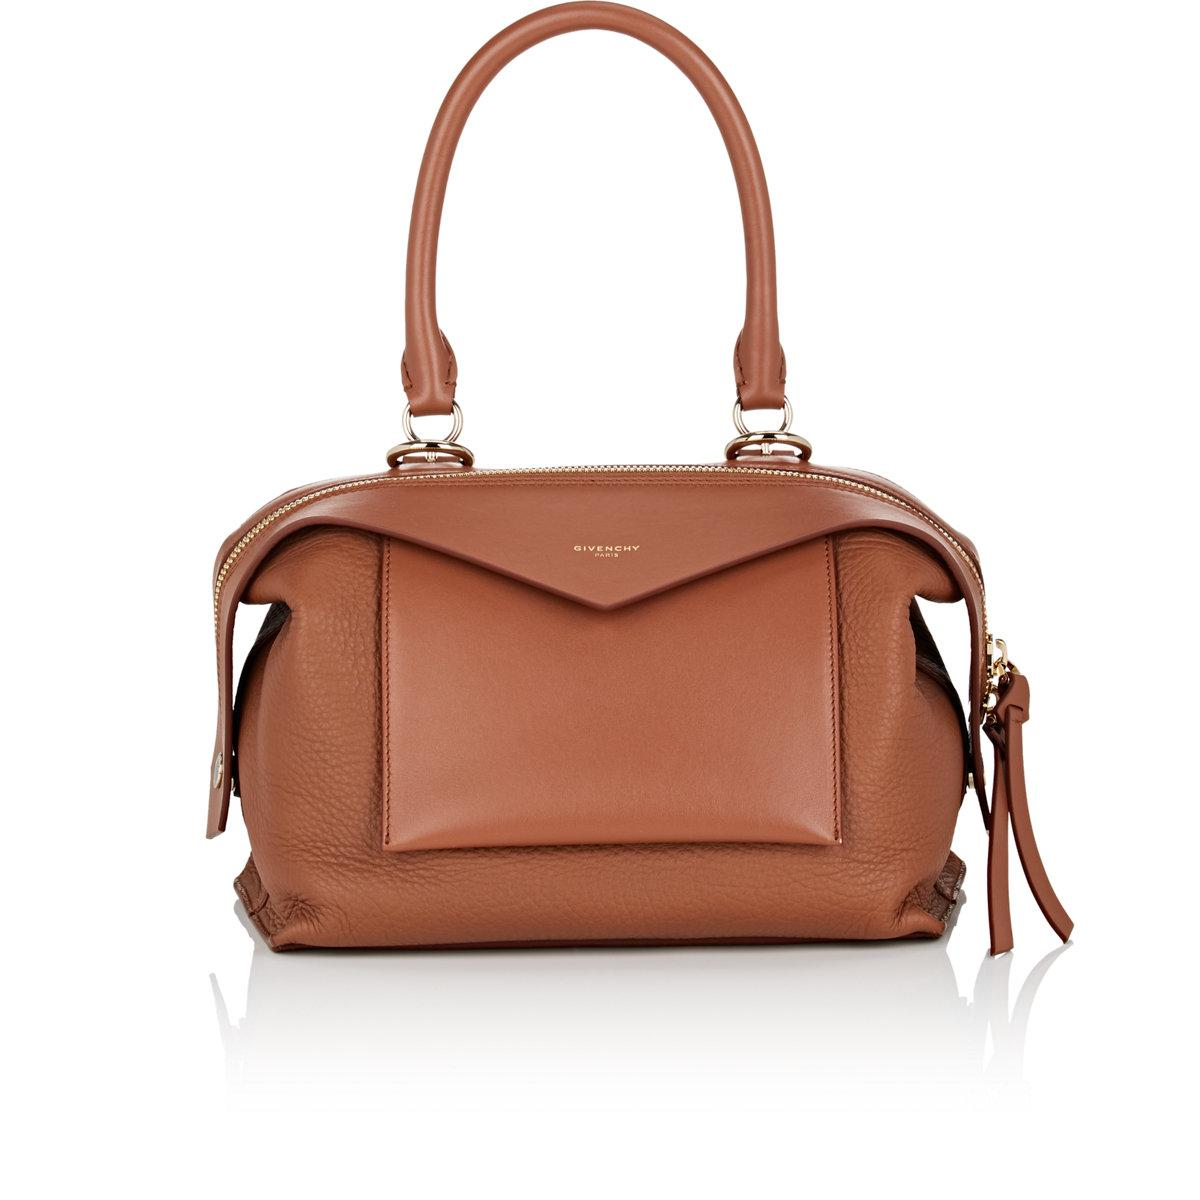 74e10ac989965 Lyst Givenchy Sway Small Leather Bag In Brown